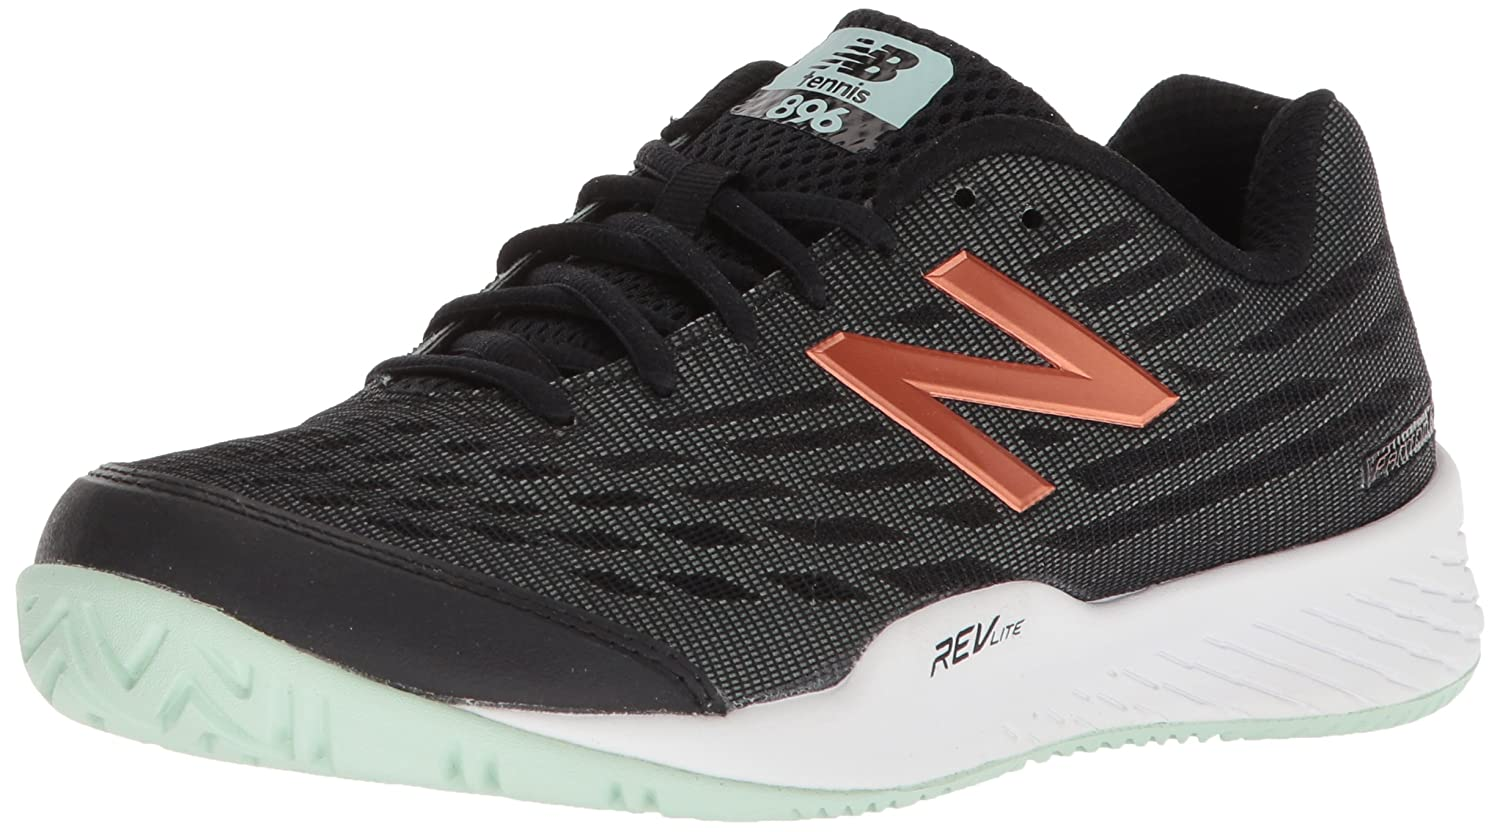 New Balance Women's 896v2 Hard Court Tennis Shoe B0751GPZ24 10 B(M) US|Black/Seafoam